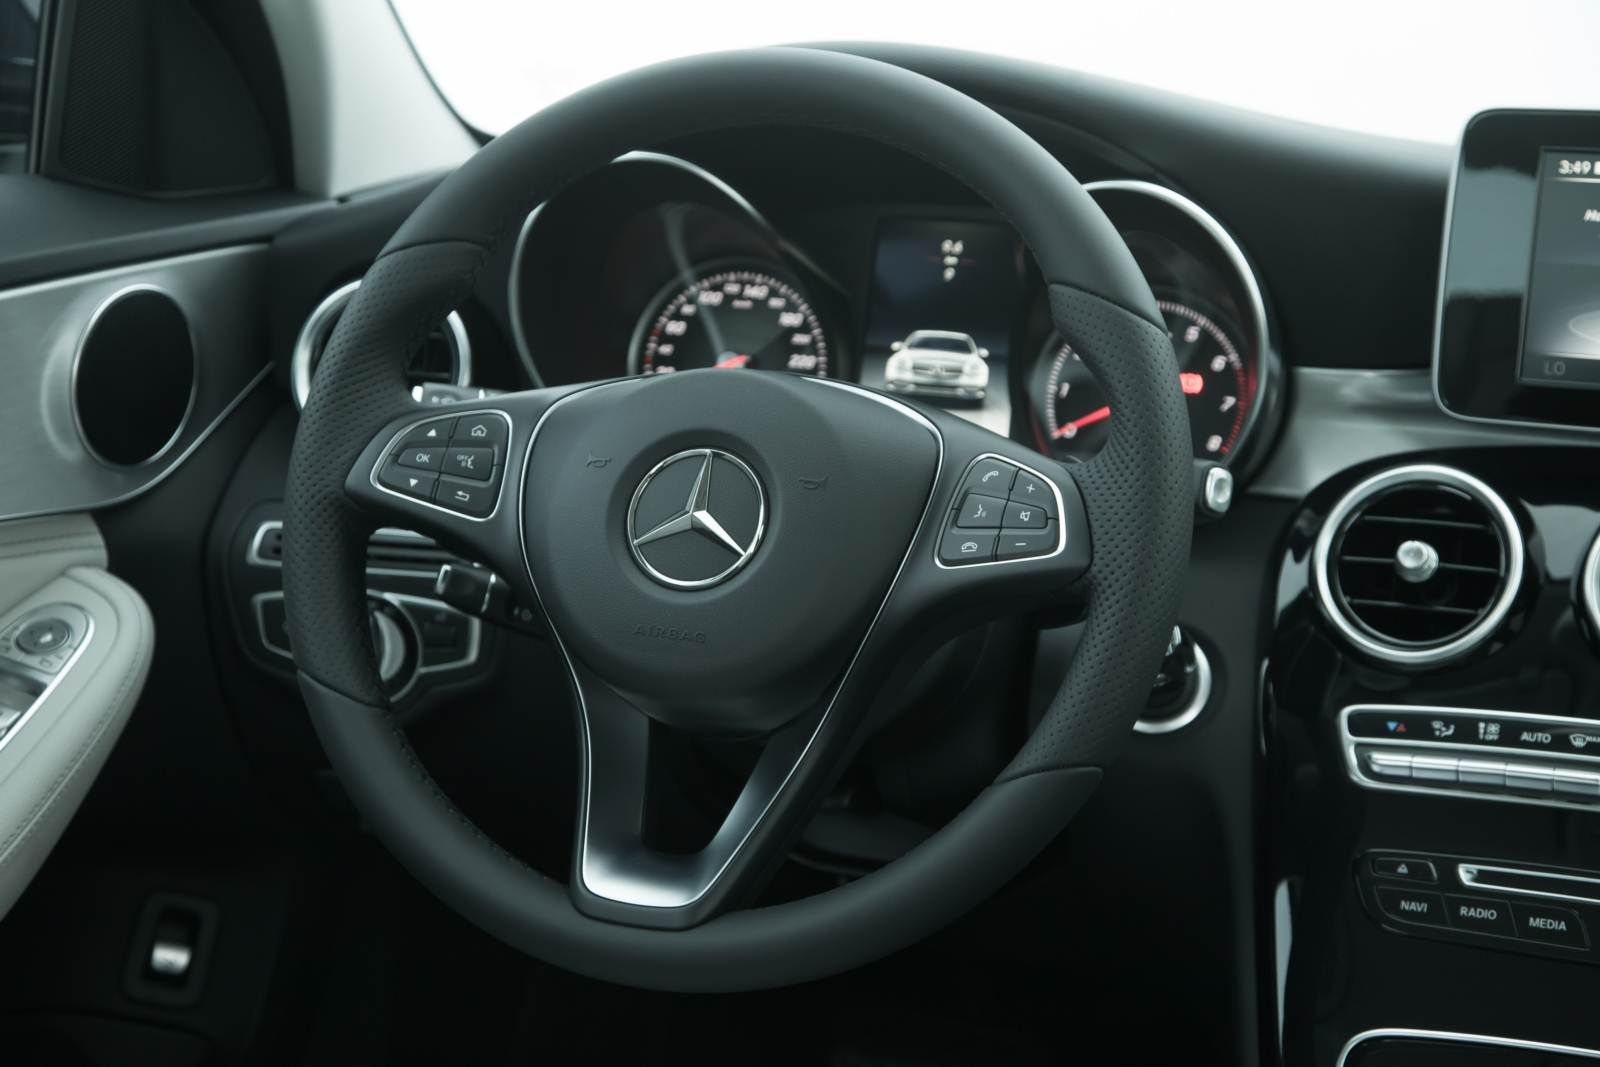 Mercedes Benz C180 Avantgarde Interior Cars Pinterest